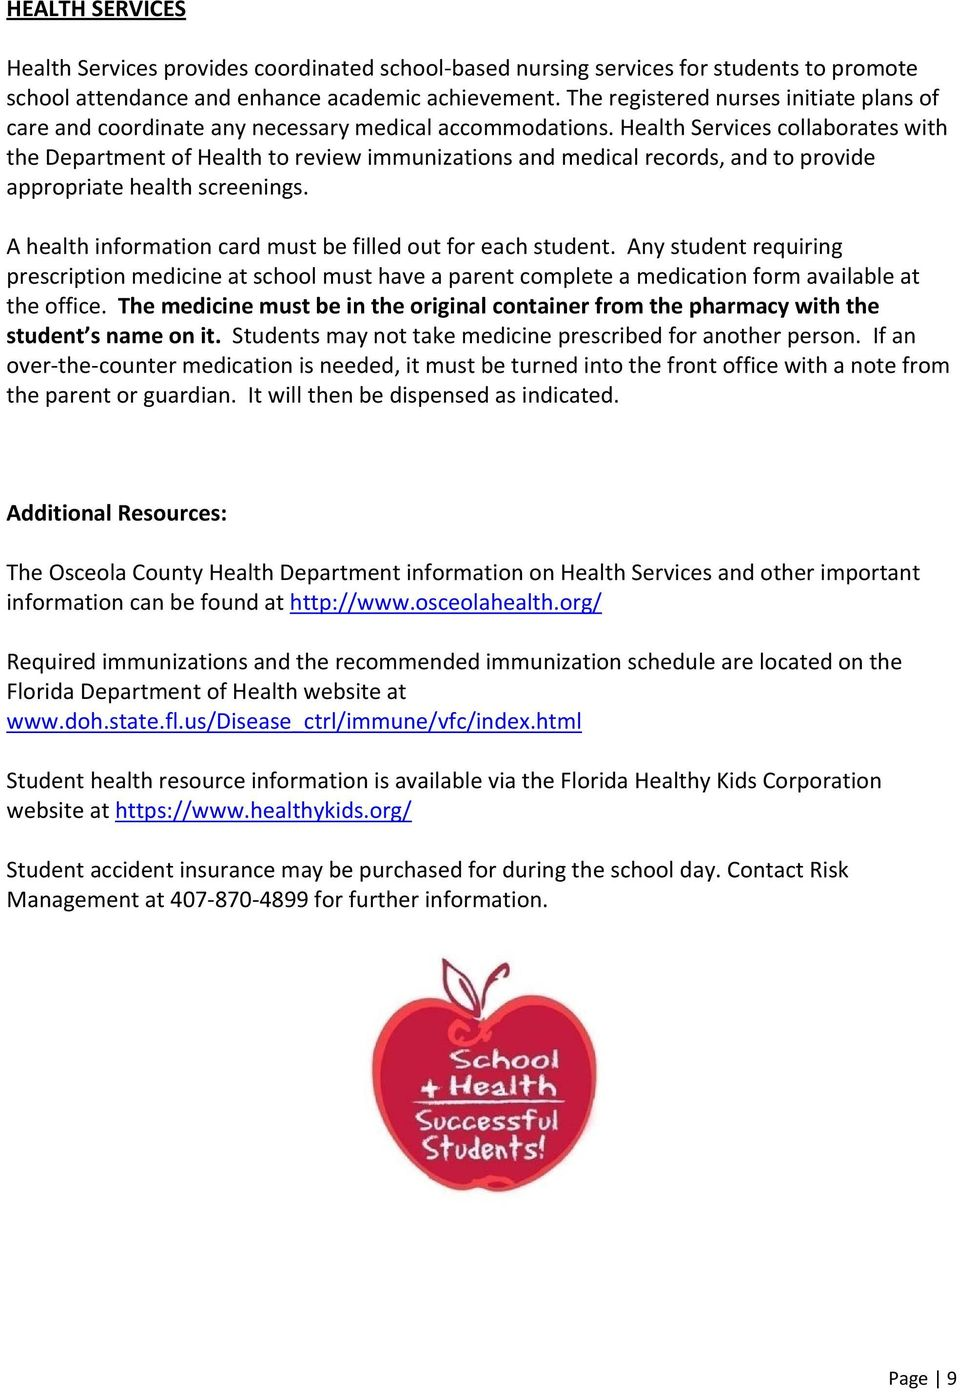 Health Services collaborates with the Department of Health to review immunizations and medical records, and to provide appropriate health screenings.